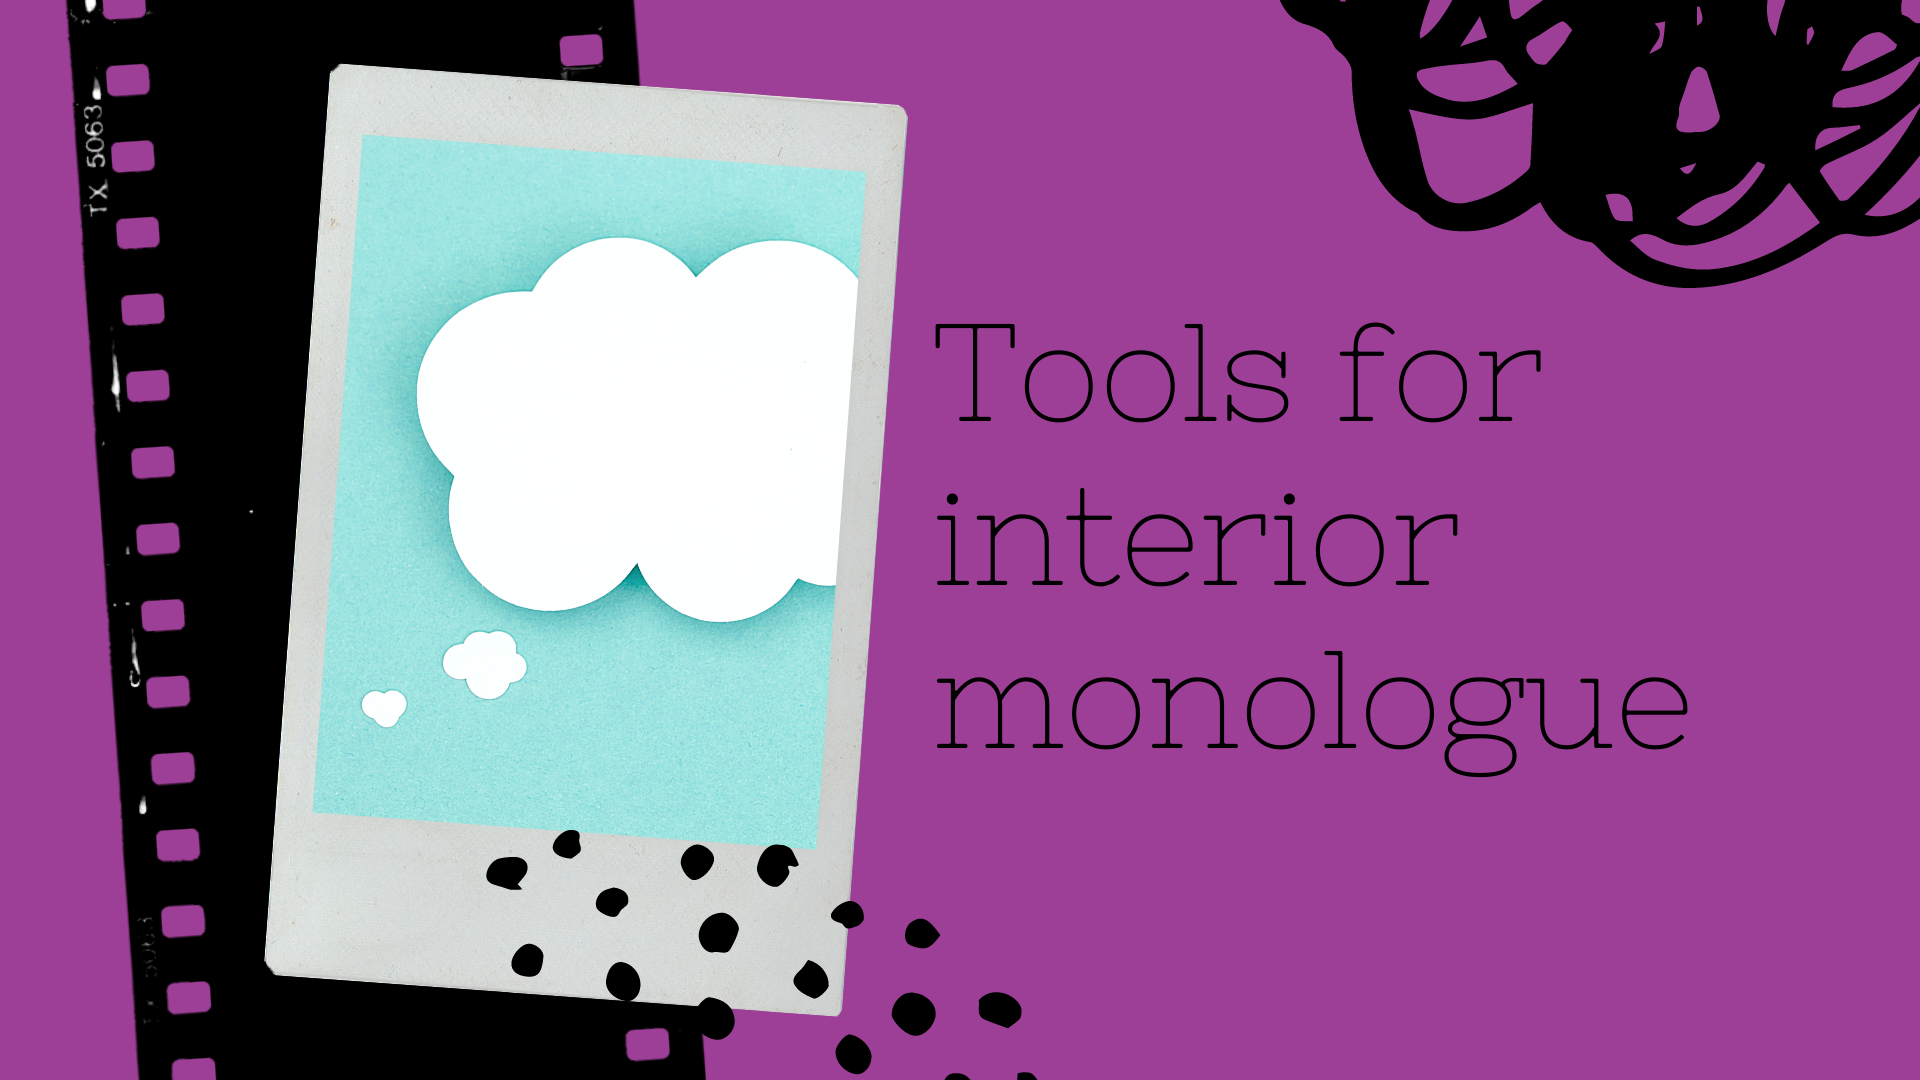 Tools for Interior Monologue